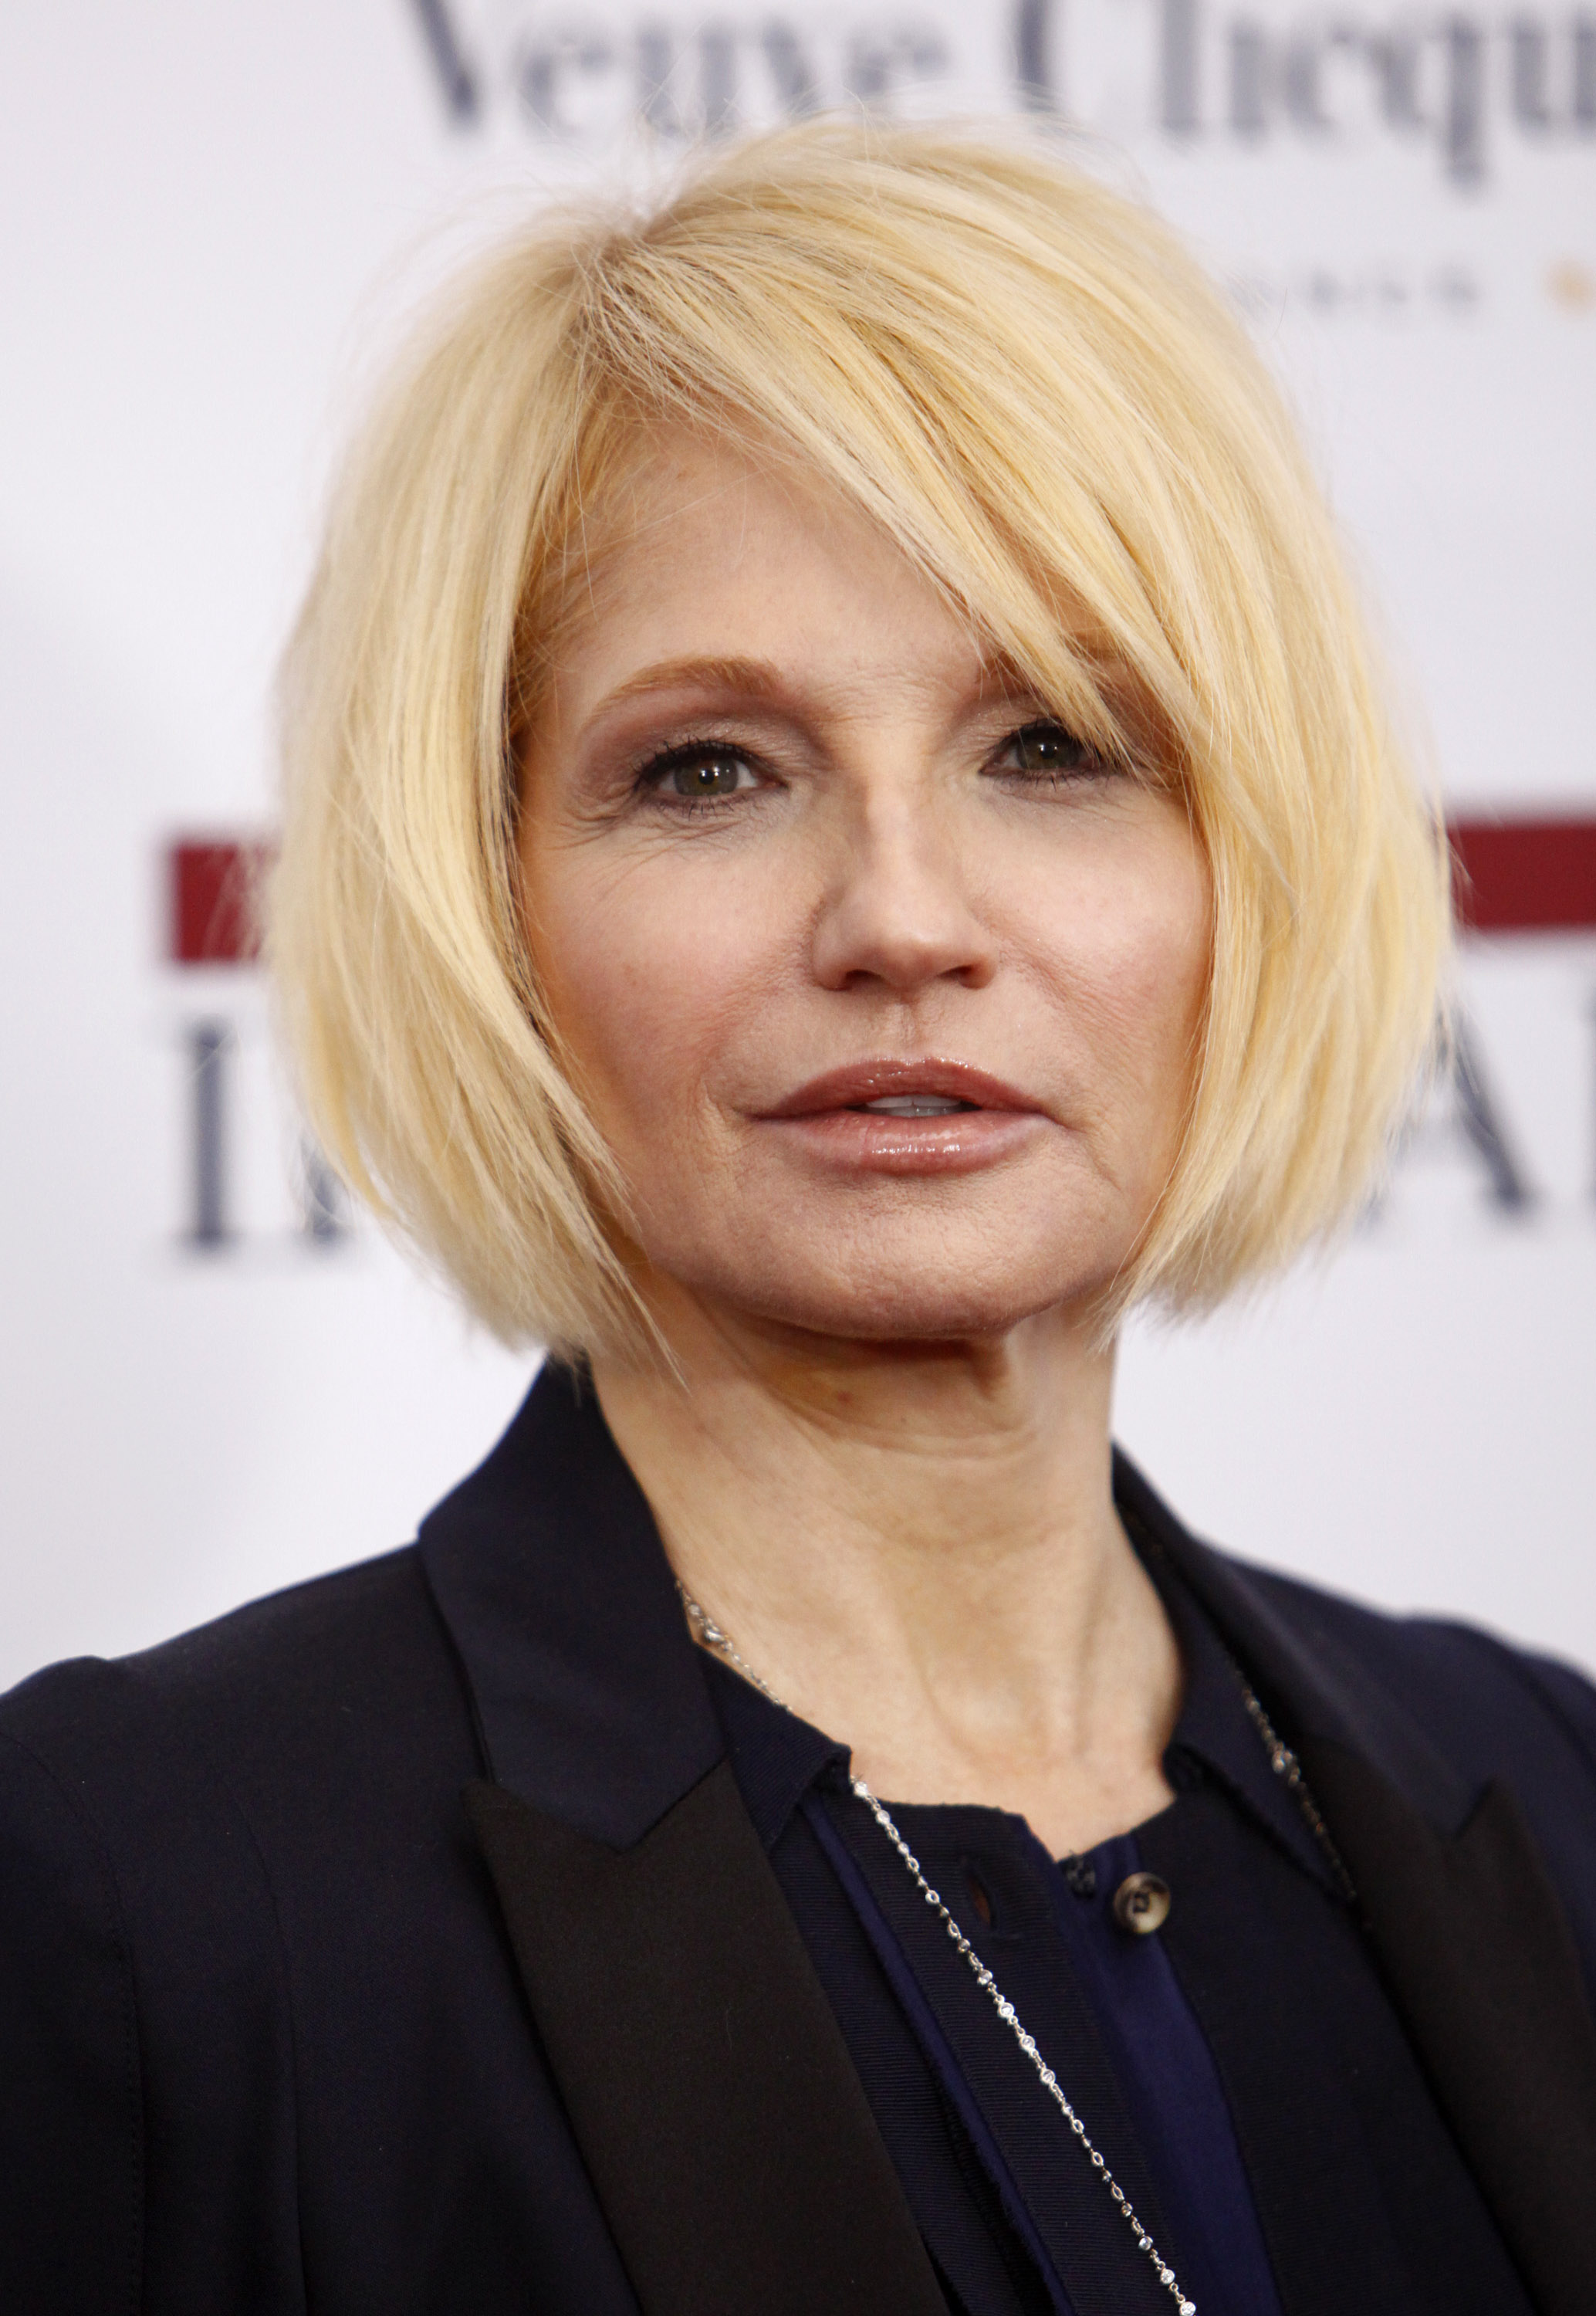 Ellen Barkin Wallpapers High Resolution And Quality Download